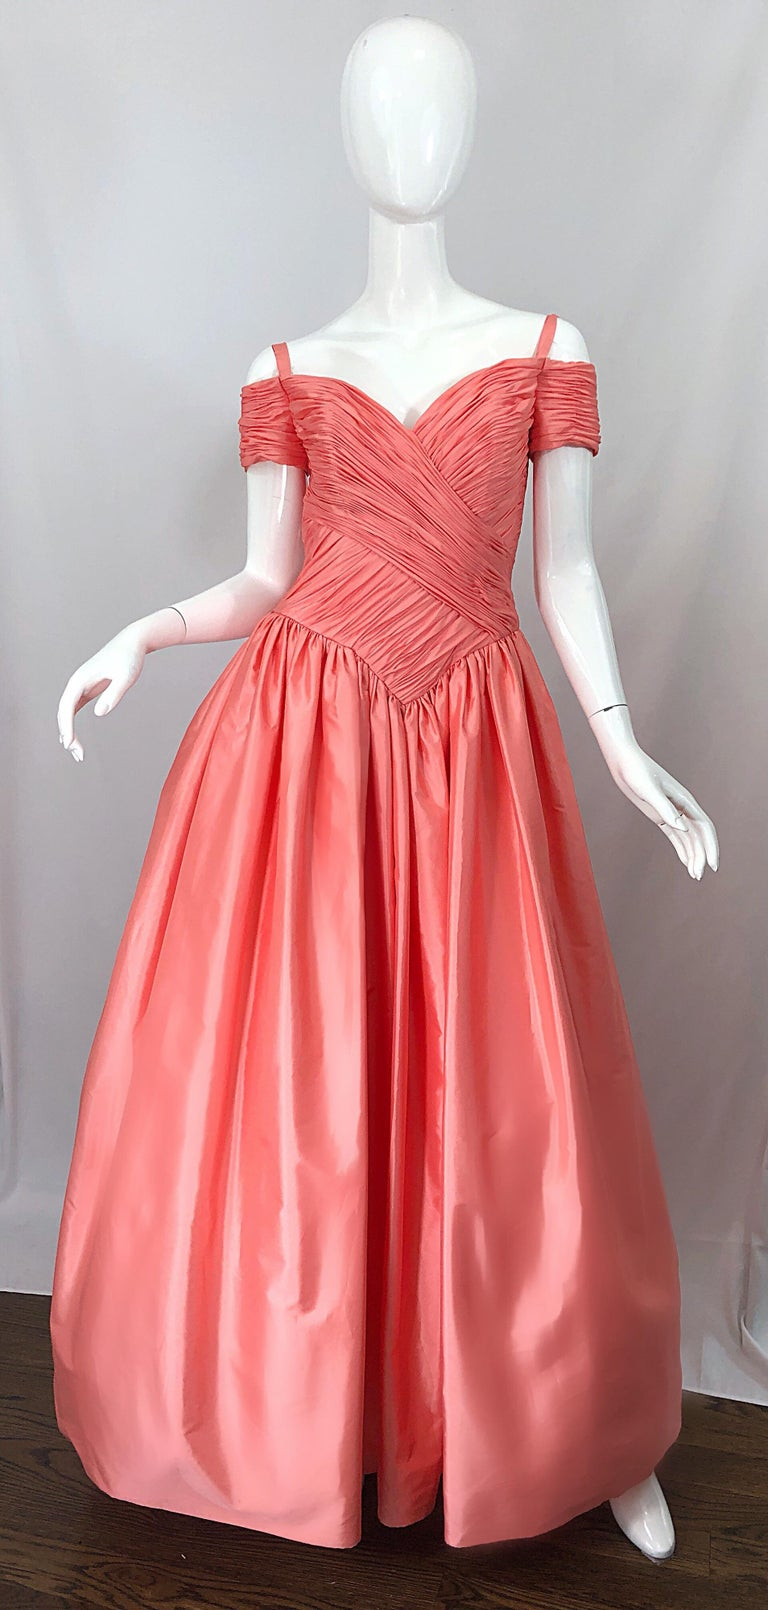 Beautiful 80s CHRIS KOLE for LILLE RUBIN coral pink / salmon silk taffeta off-the-shoulder evening gown! Features a flattering ruched tailored boned bodice with elastic straps at top shoulder. Flattering and forgiving full skirt with a built in